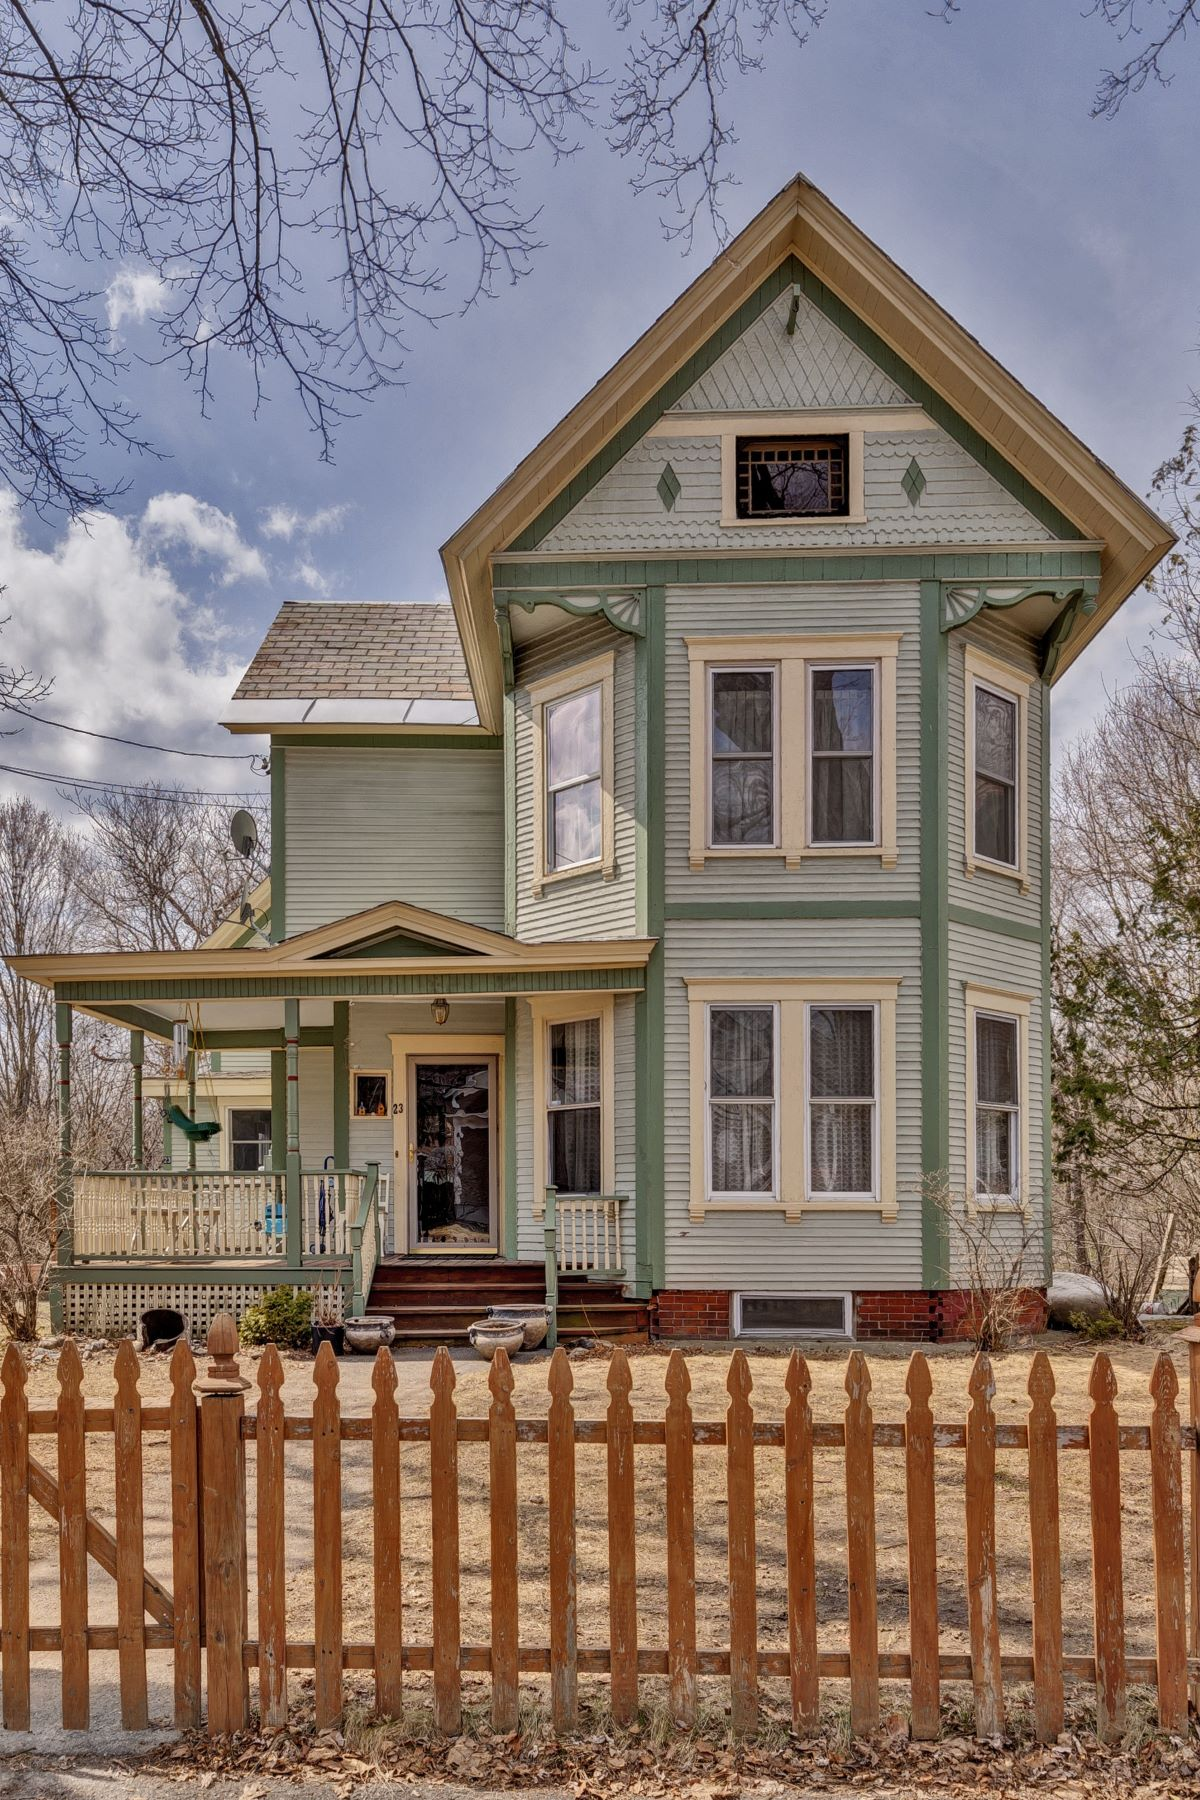 Single Family Home for Sale at Walk to library, school, bus stop, 23 Crafts Lebanon, New Hampshire, 03784 United States